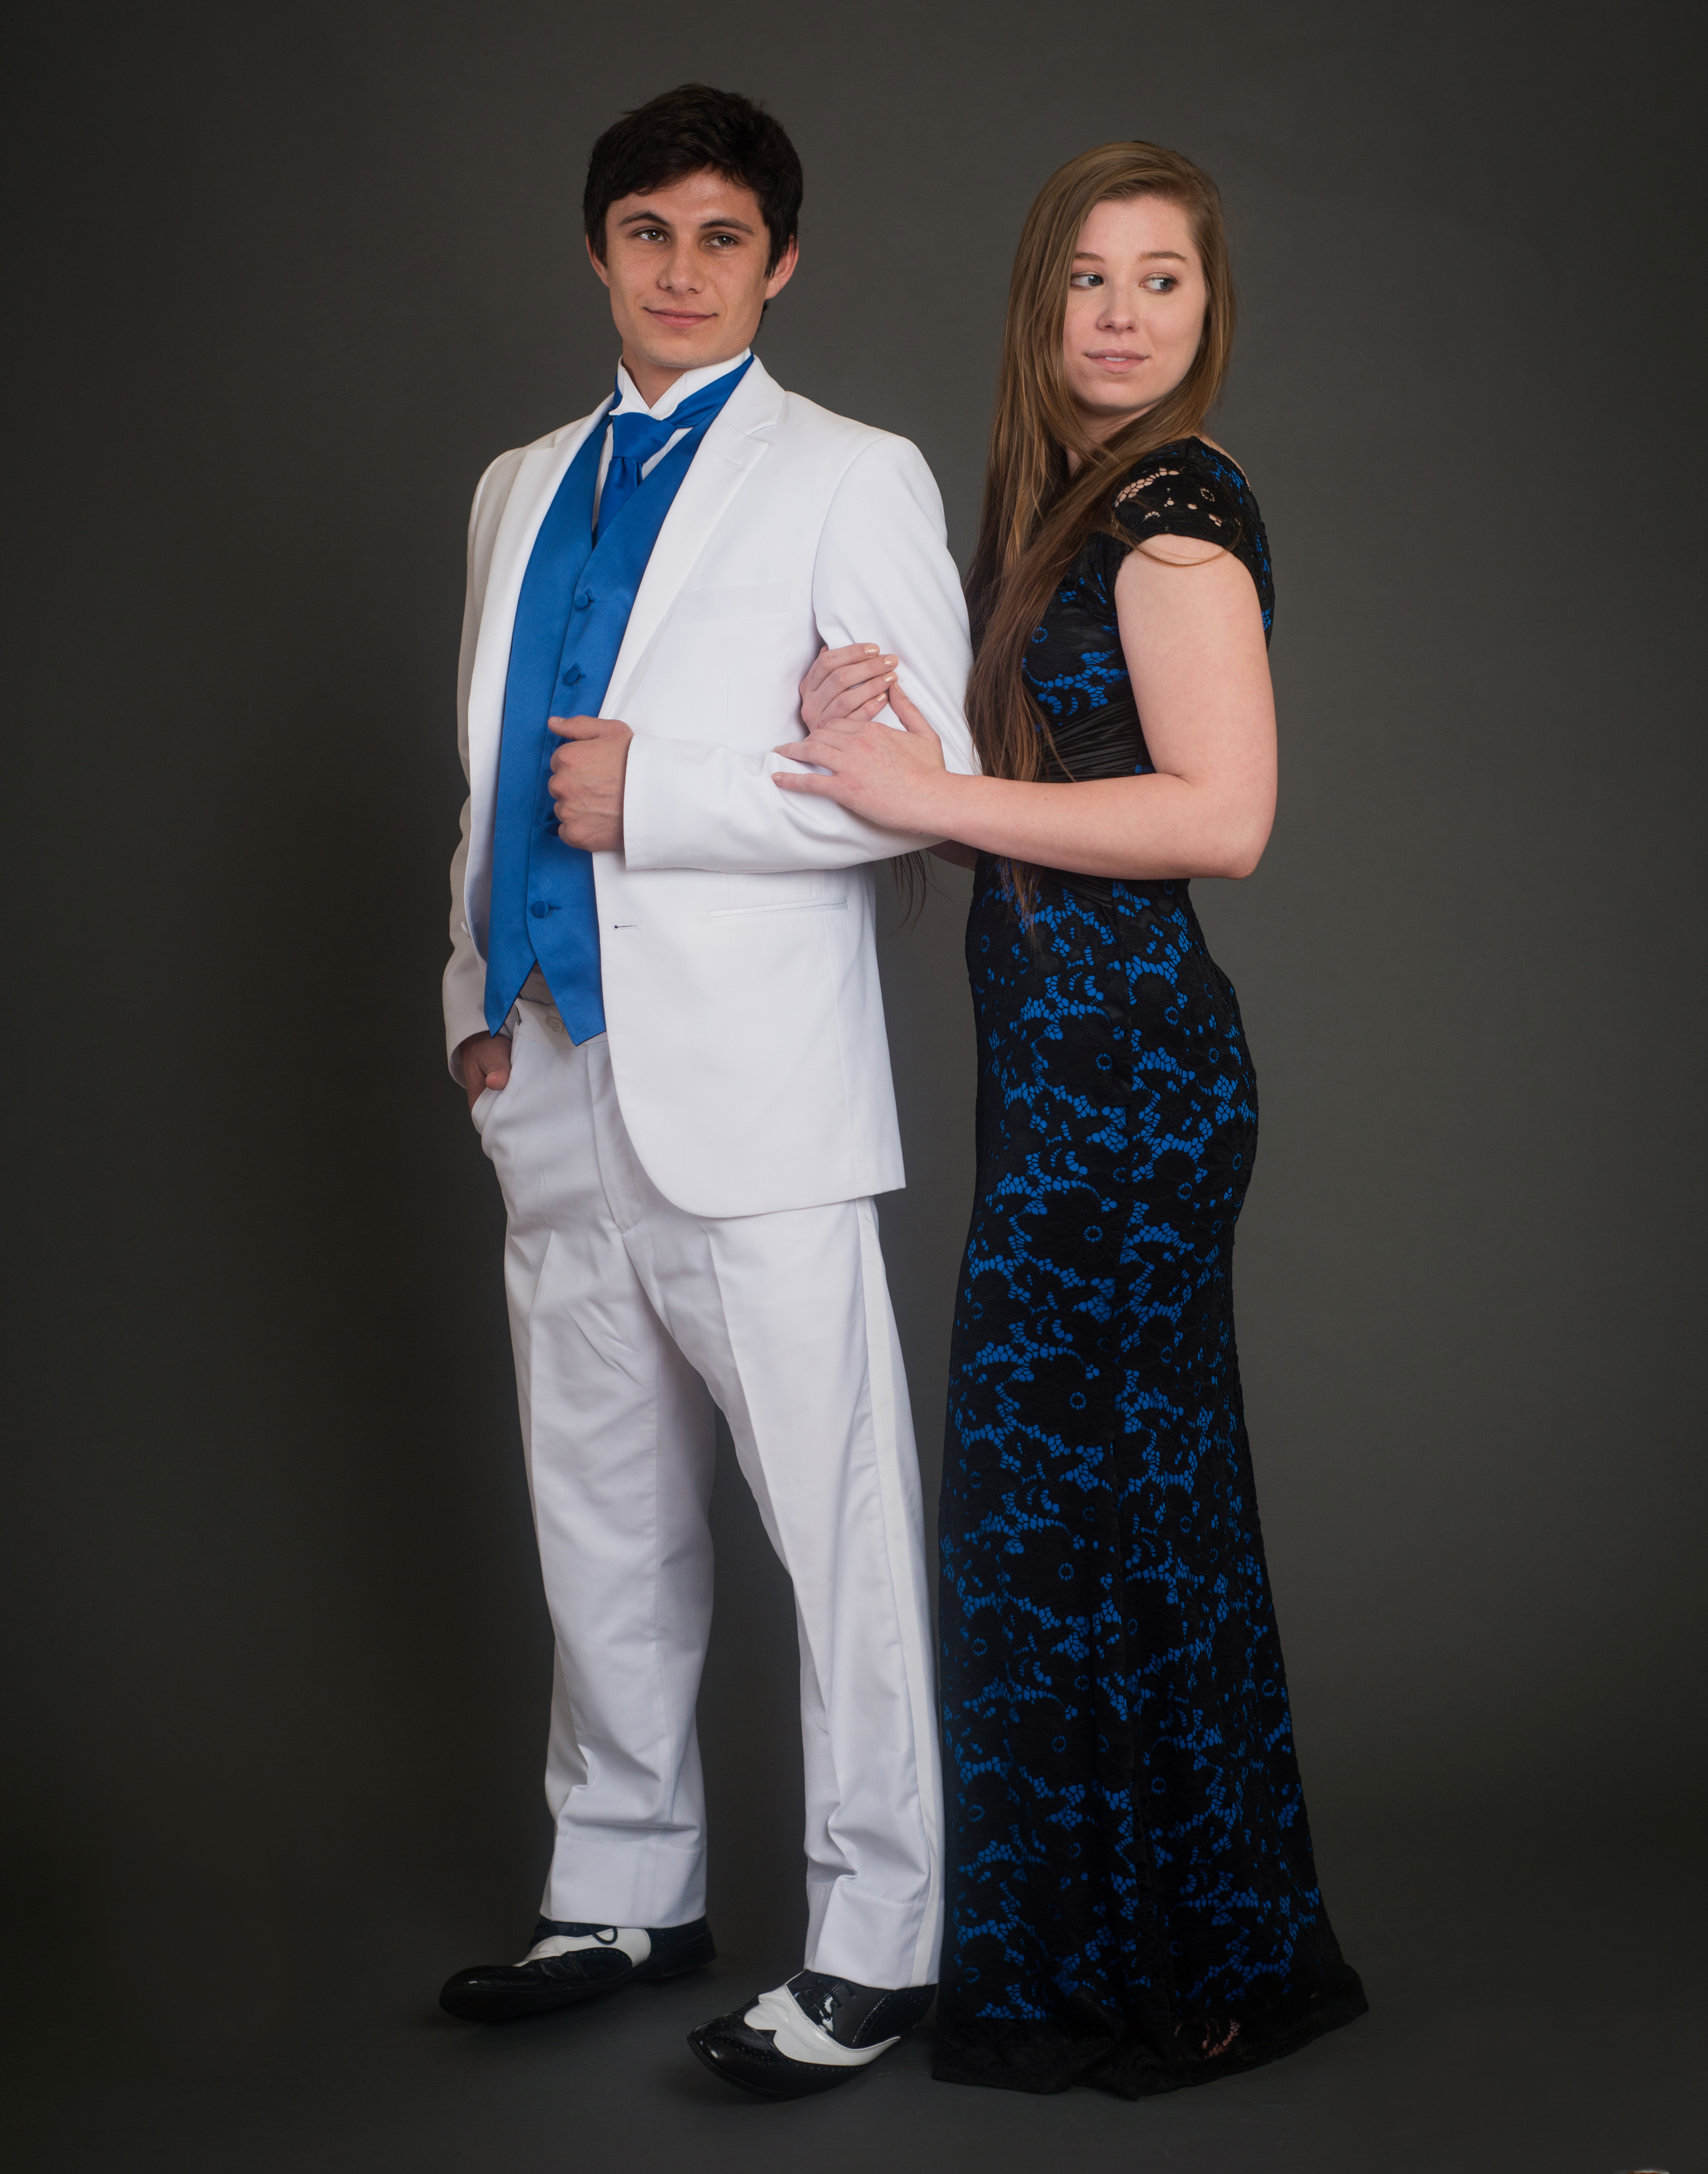 Men's & Women's Formal Wear